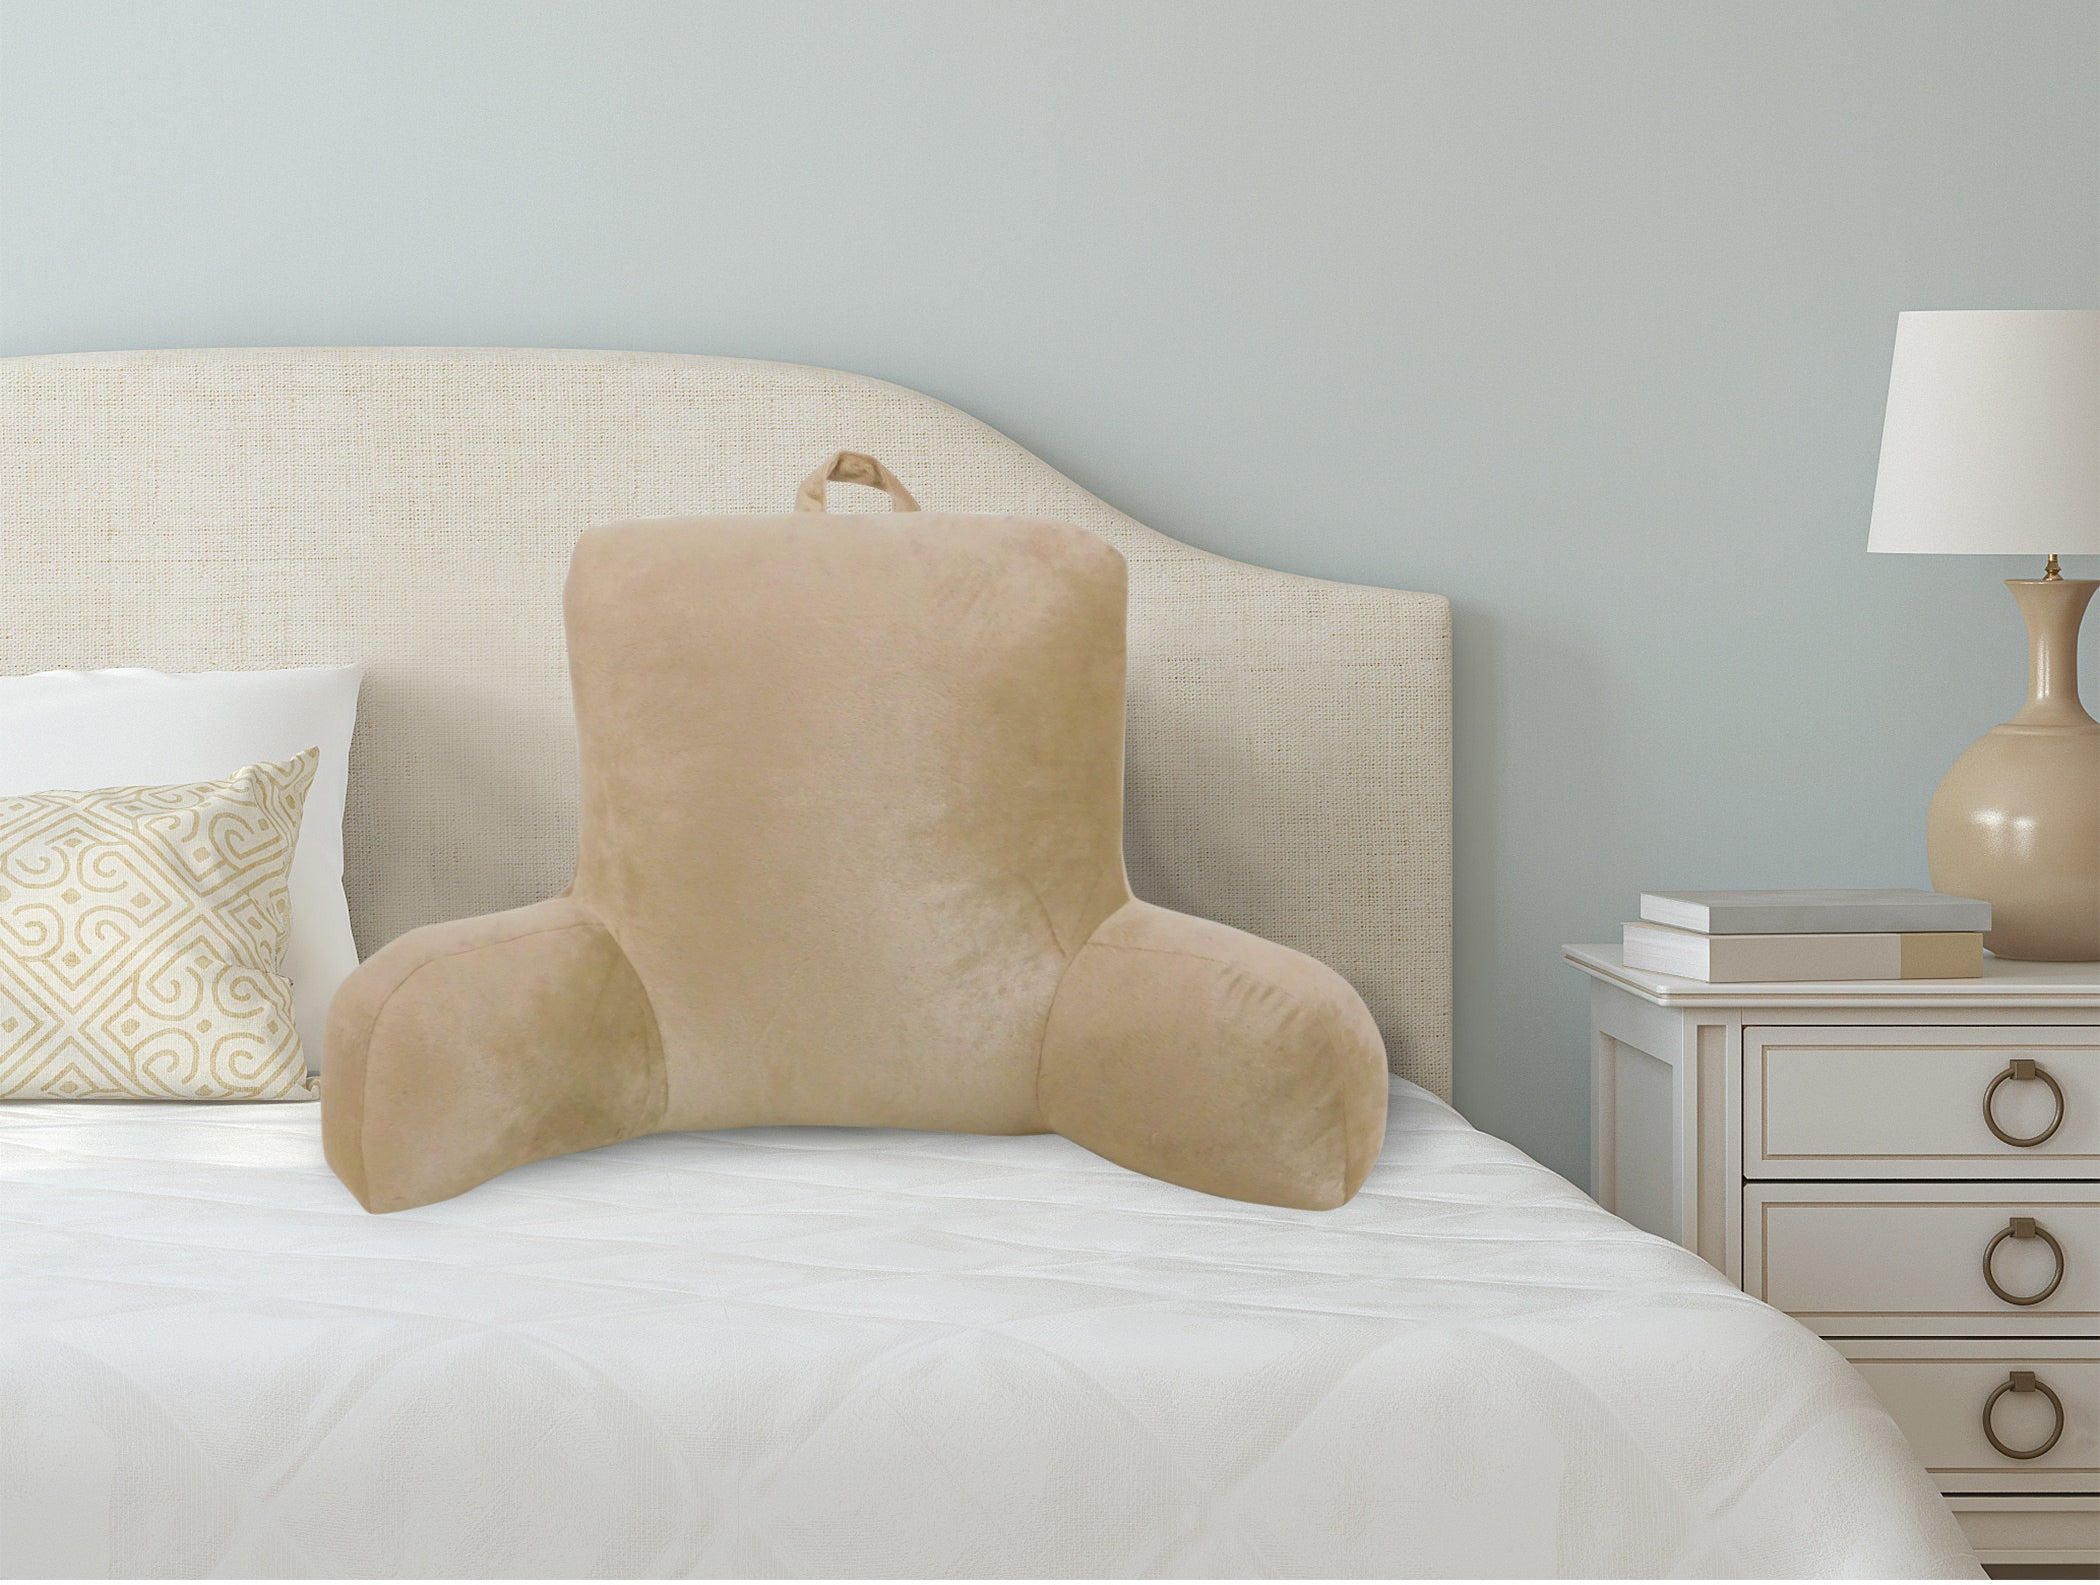 The lounger pillow in the color brownstone